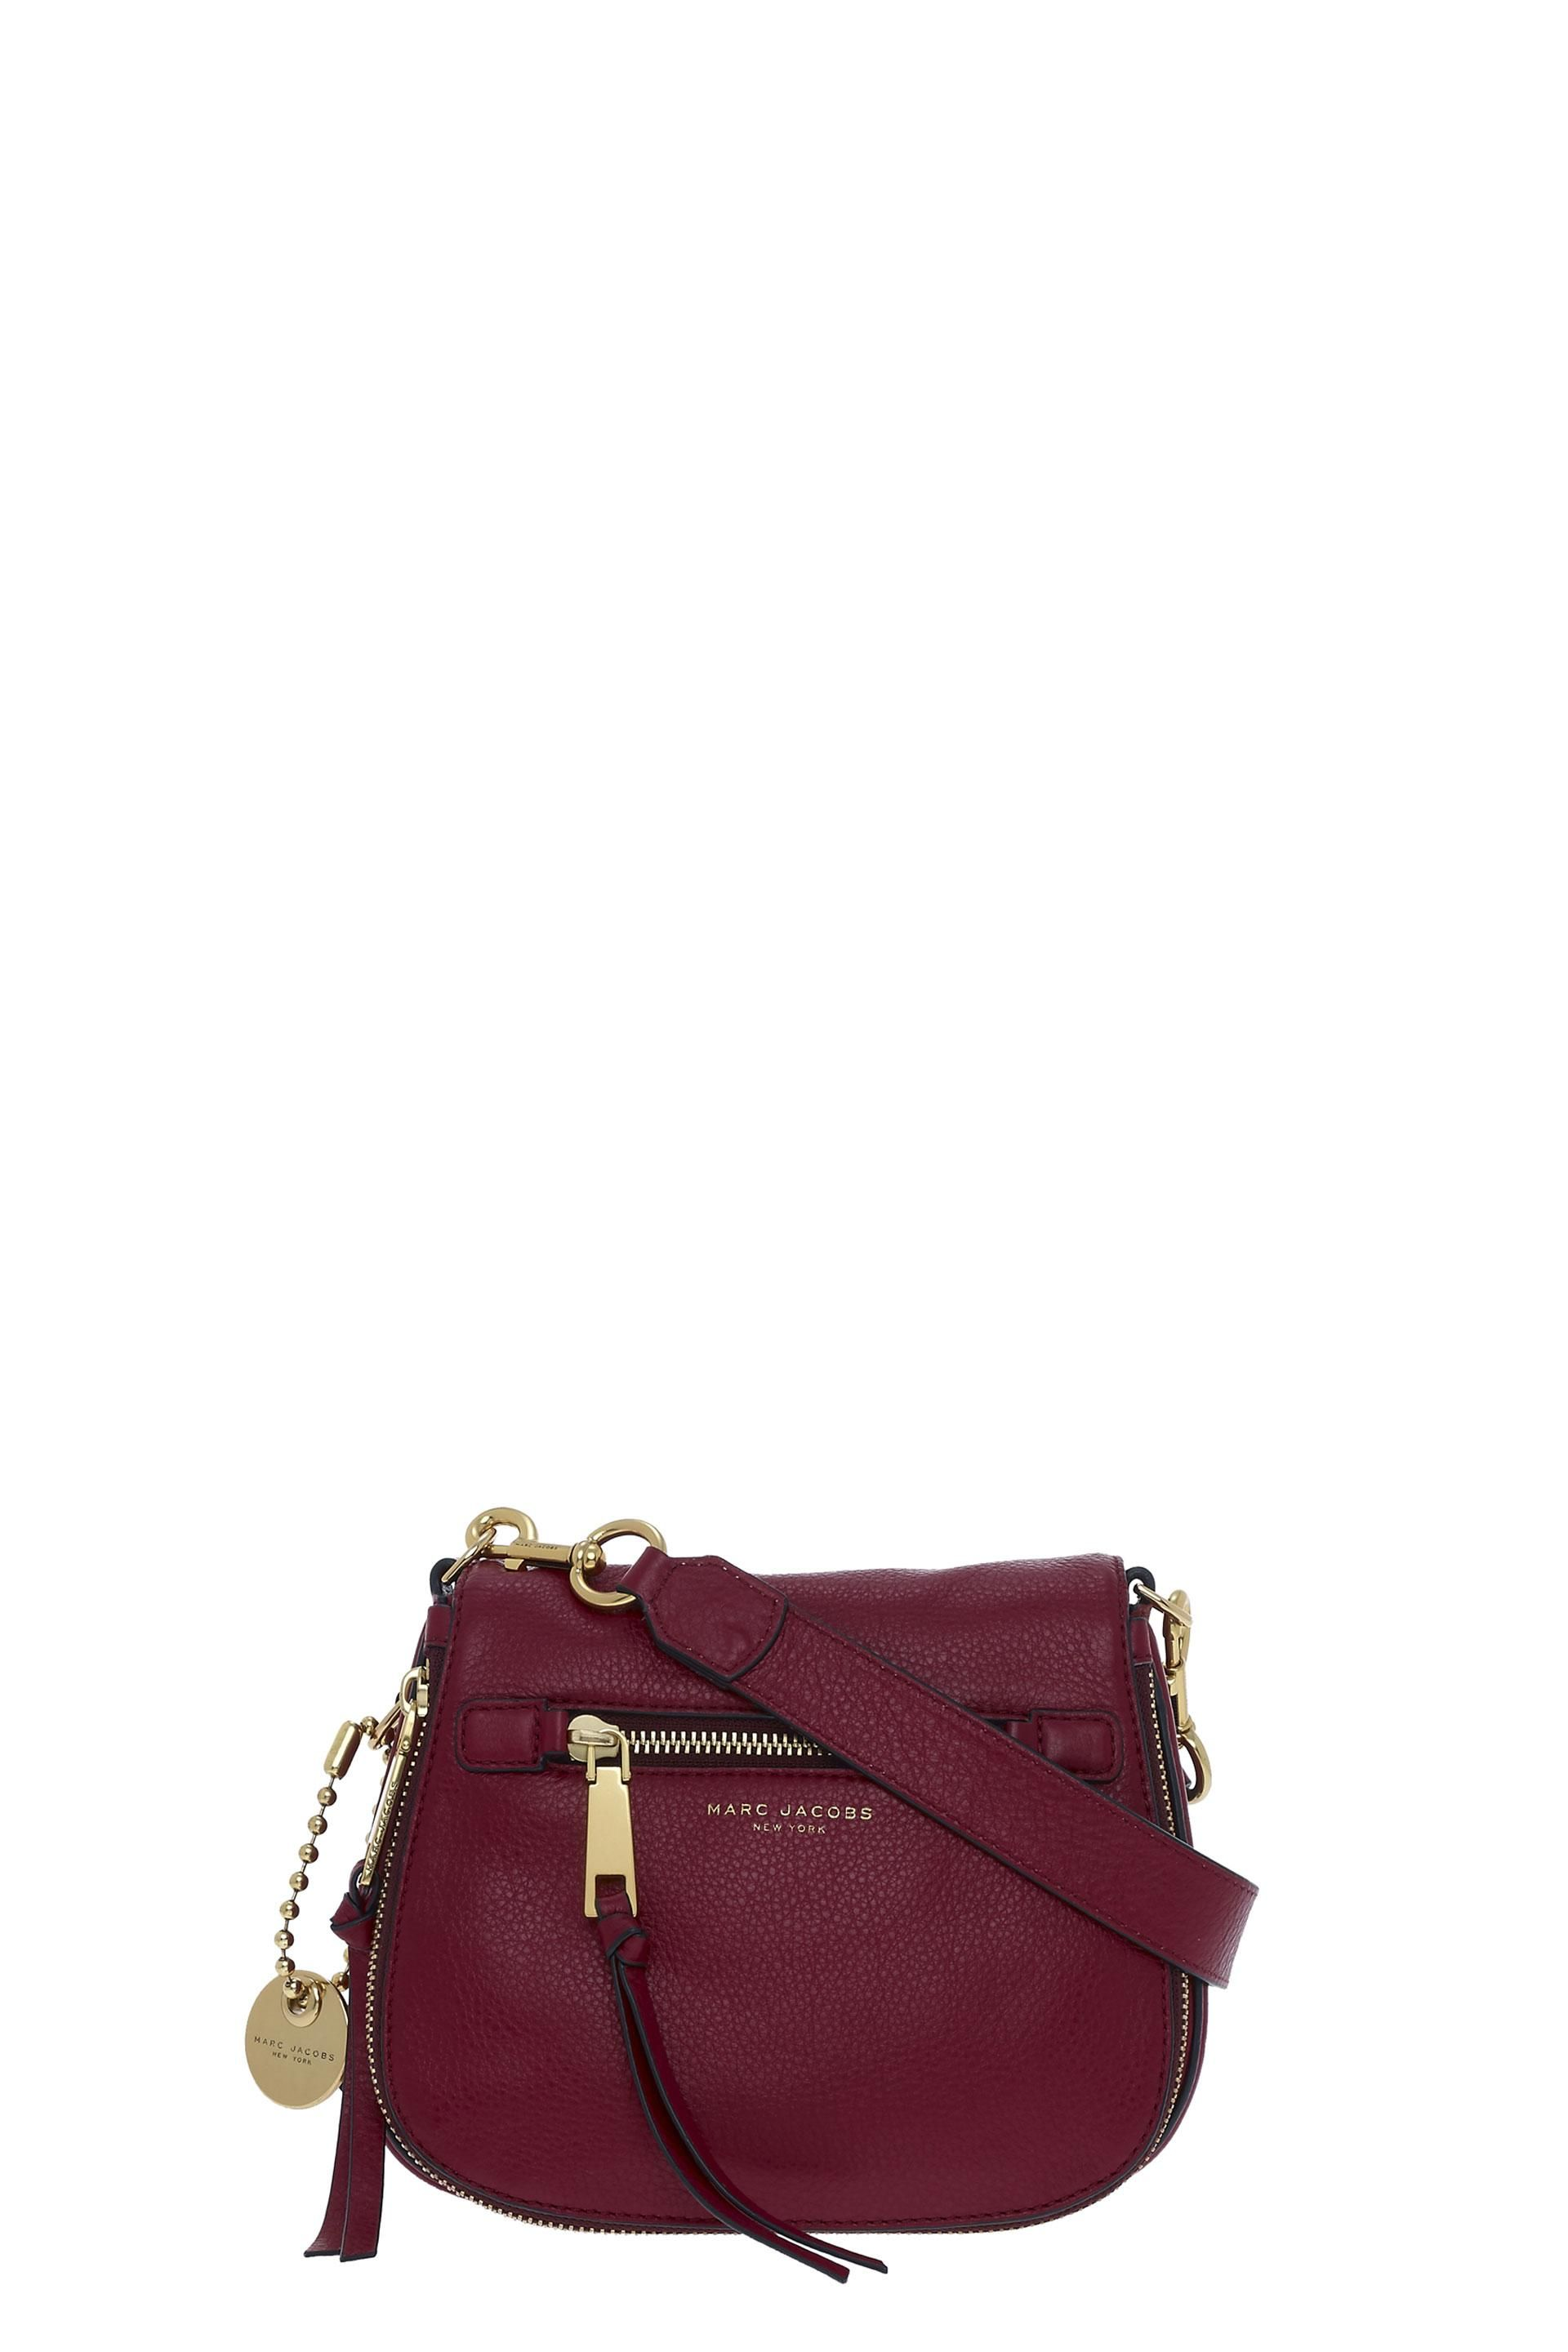 MARC JACOBS Recruit Small Saddle Bag.  marcjacobs  bags  shoulder bags   leather  polyester  crossbody  lining 8a1ff36f92